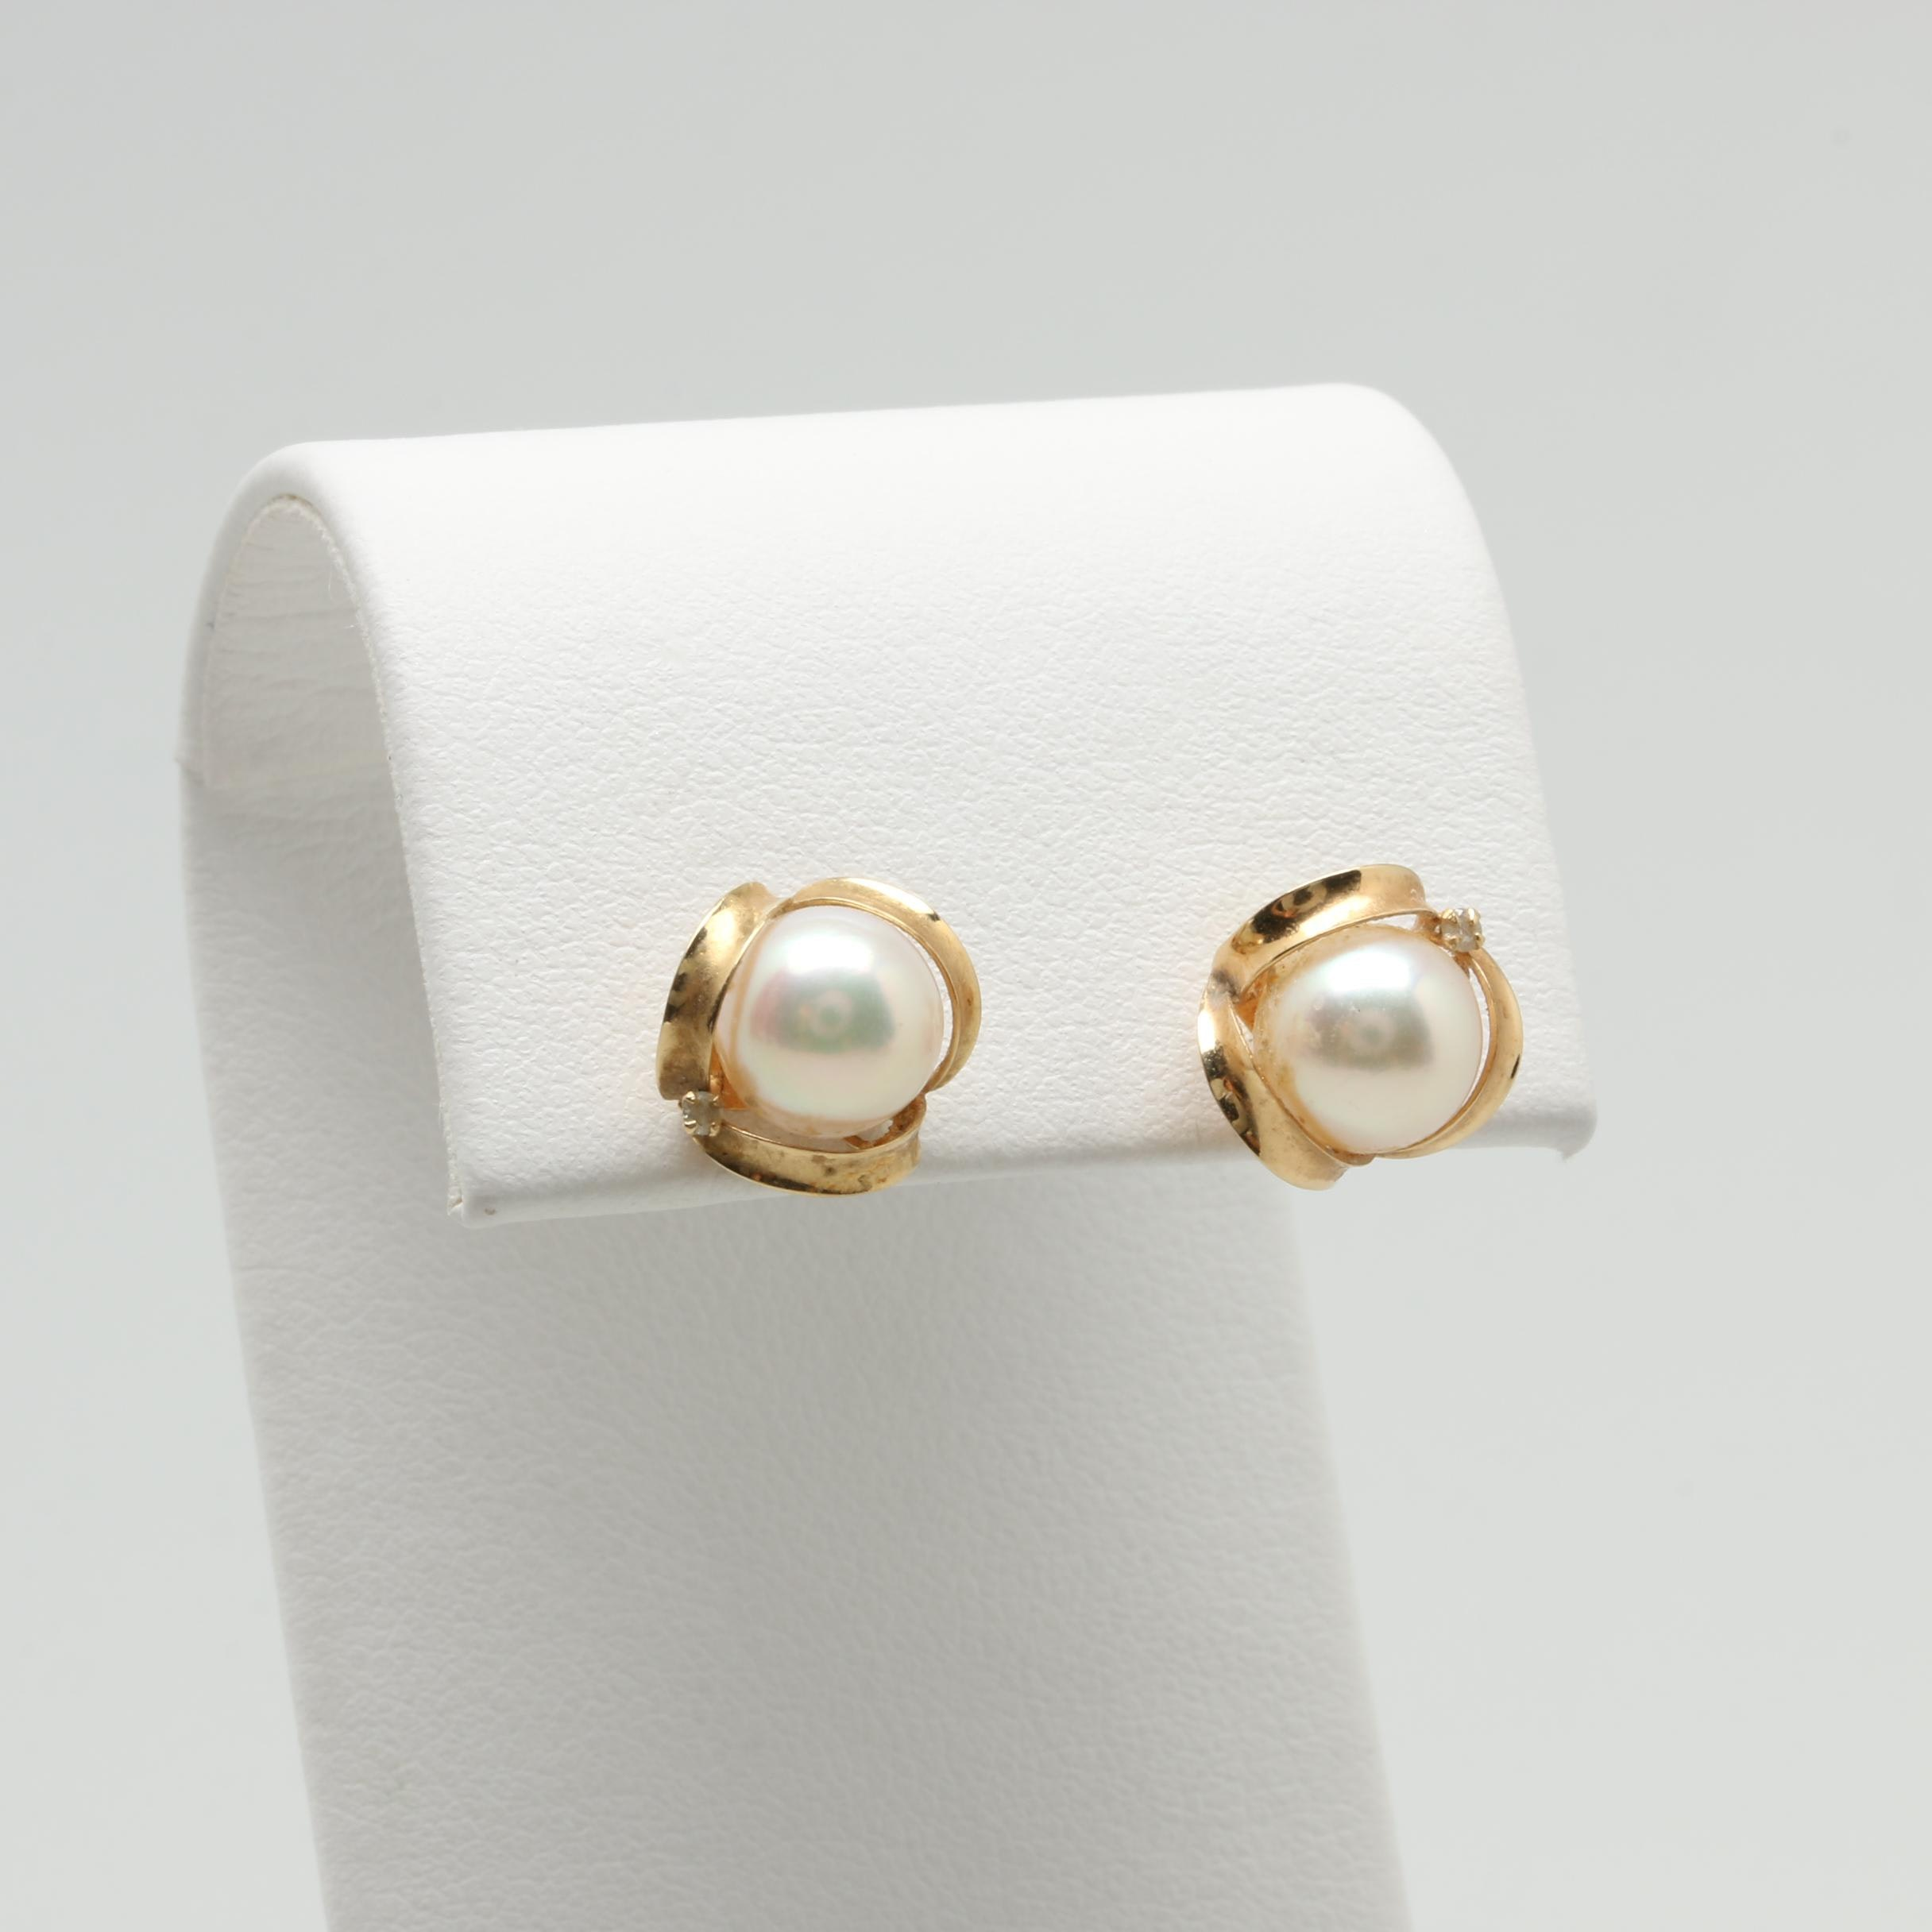 18K Yellow Gold Cultured Pearl and Diamond Earrings